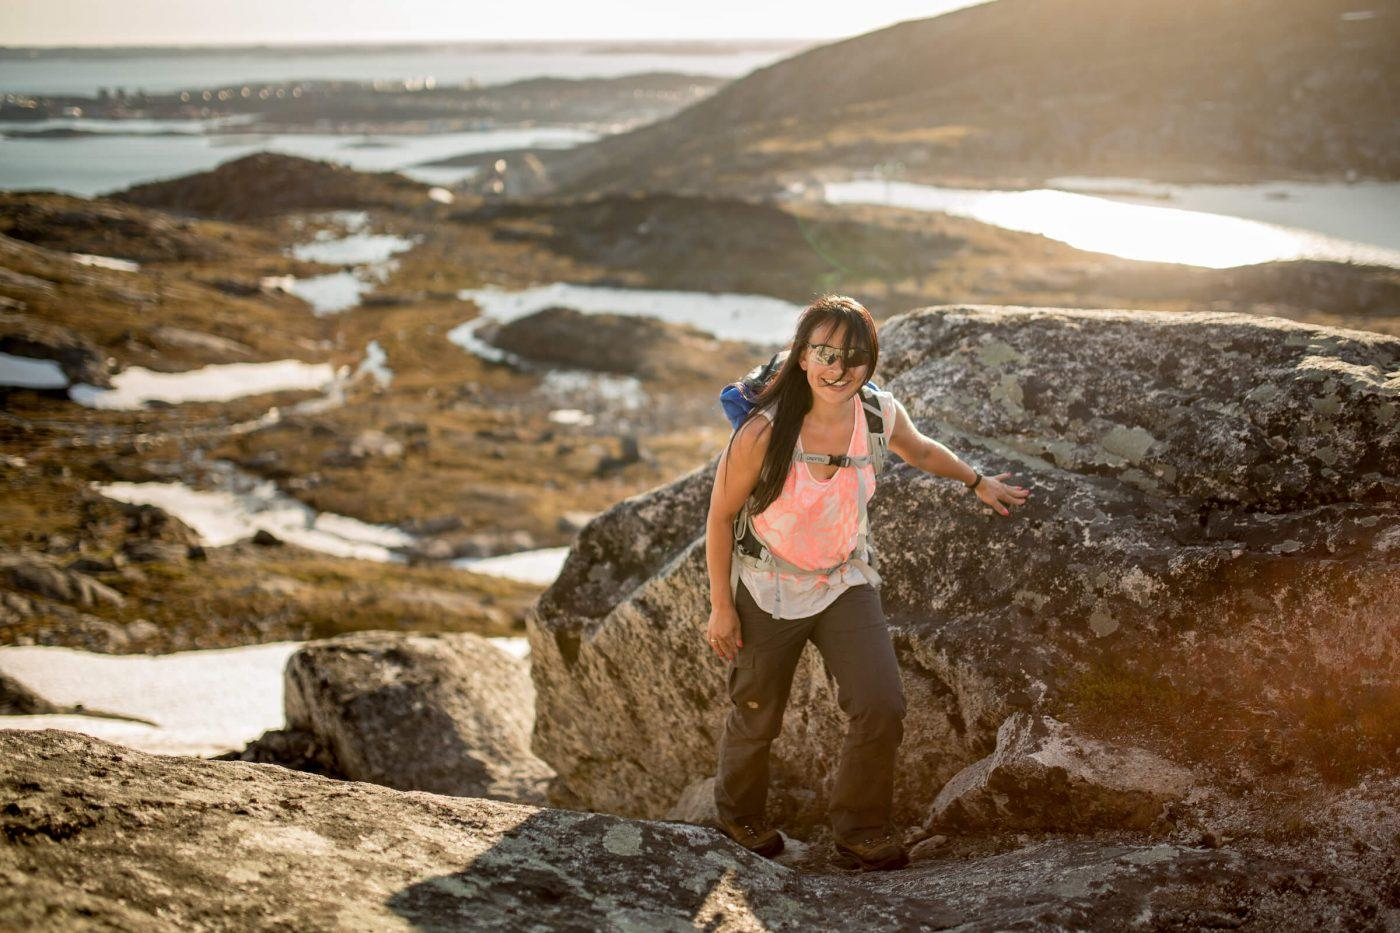 A hiker on the first part of the climb to the Ukkusissaq - Store Malene peak outside Nuuk in Greenland